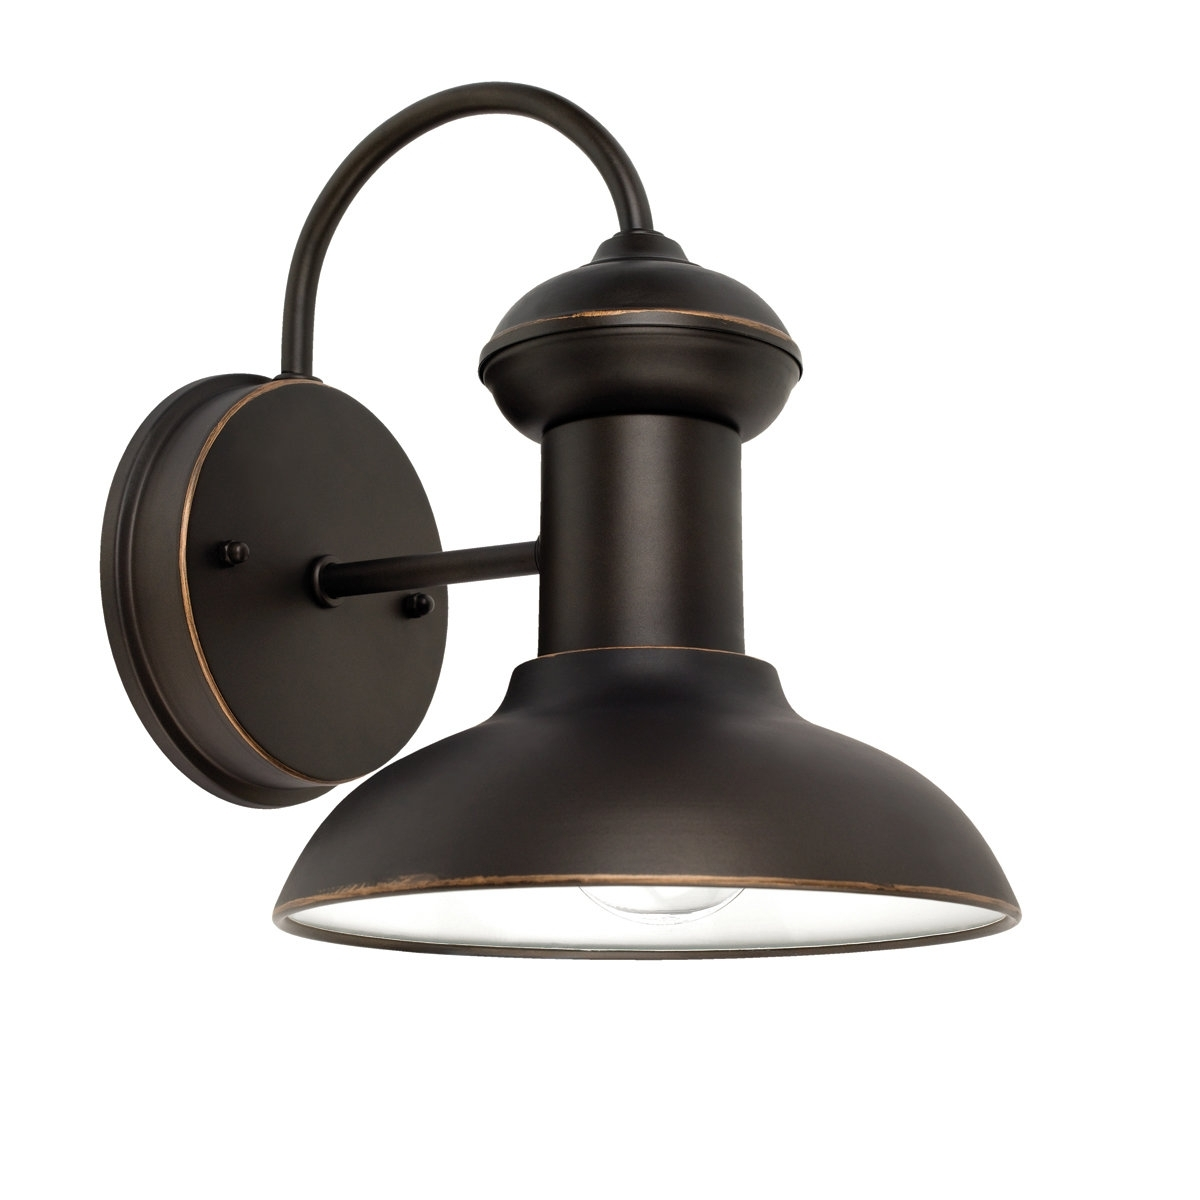 Most Recent Battery Operated Outdoor Lights At Wayfair Throughout Outdoor Wall Lighting & Barn Lights You'll Love (View 13 of 20)